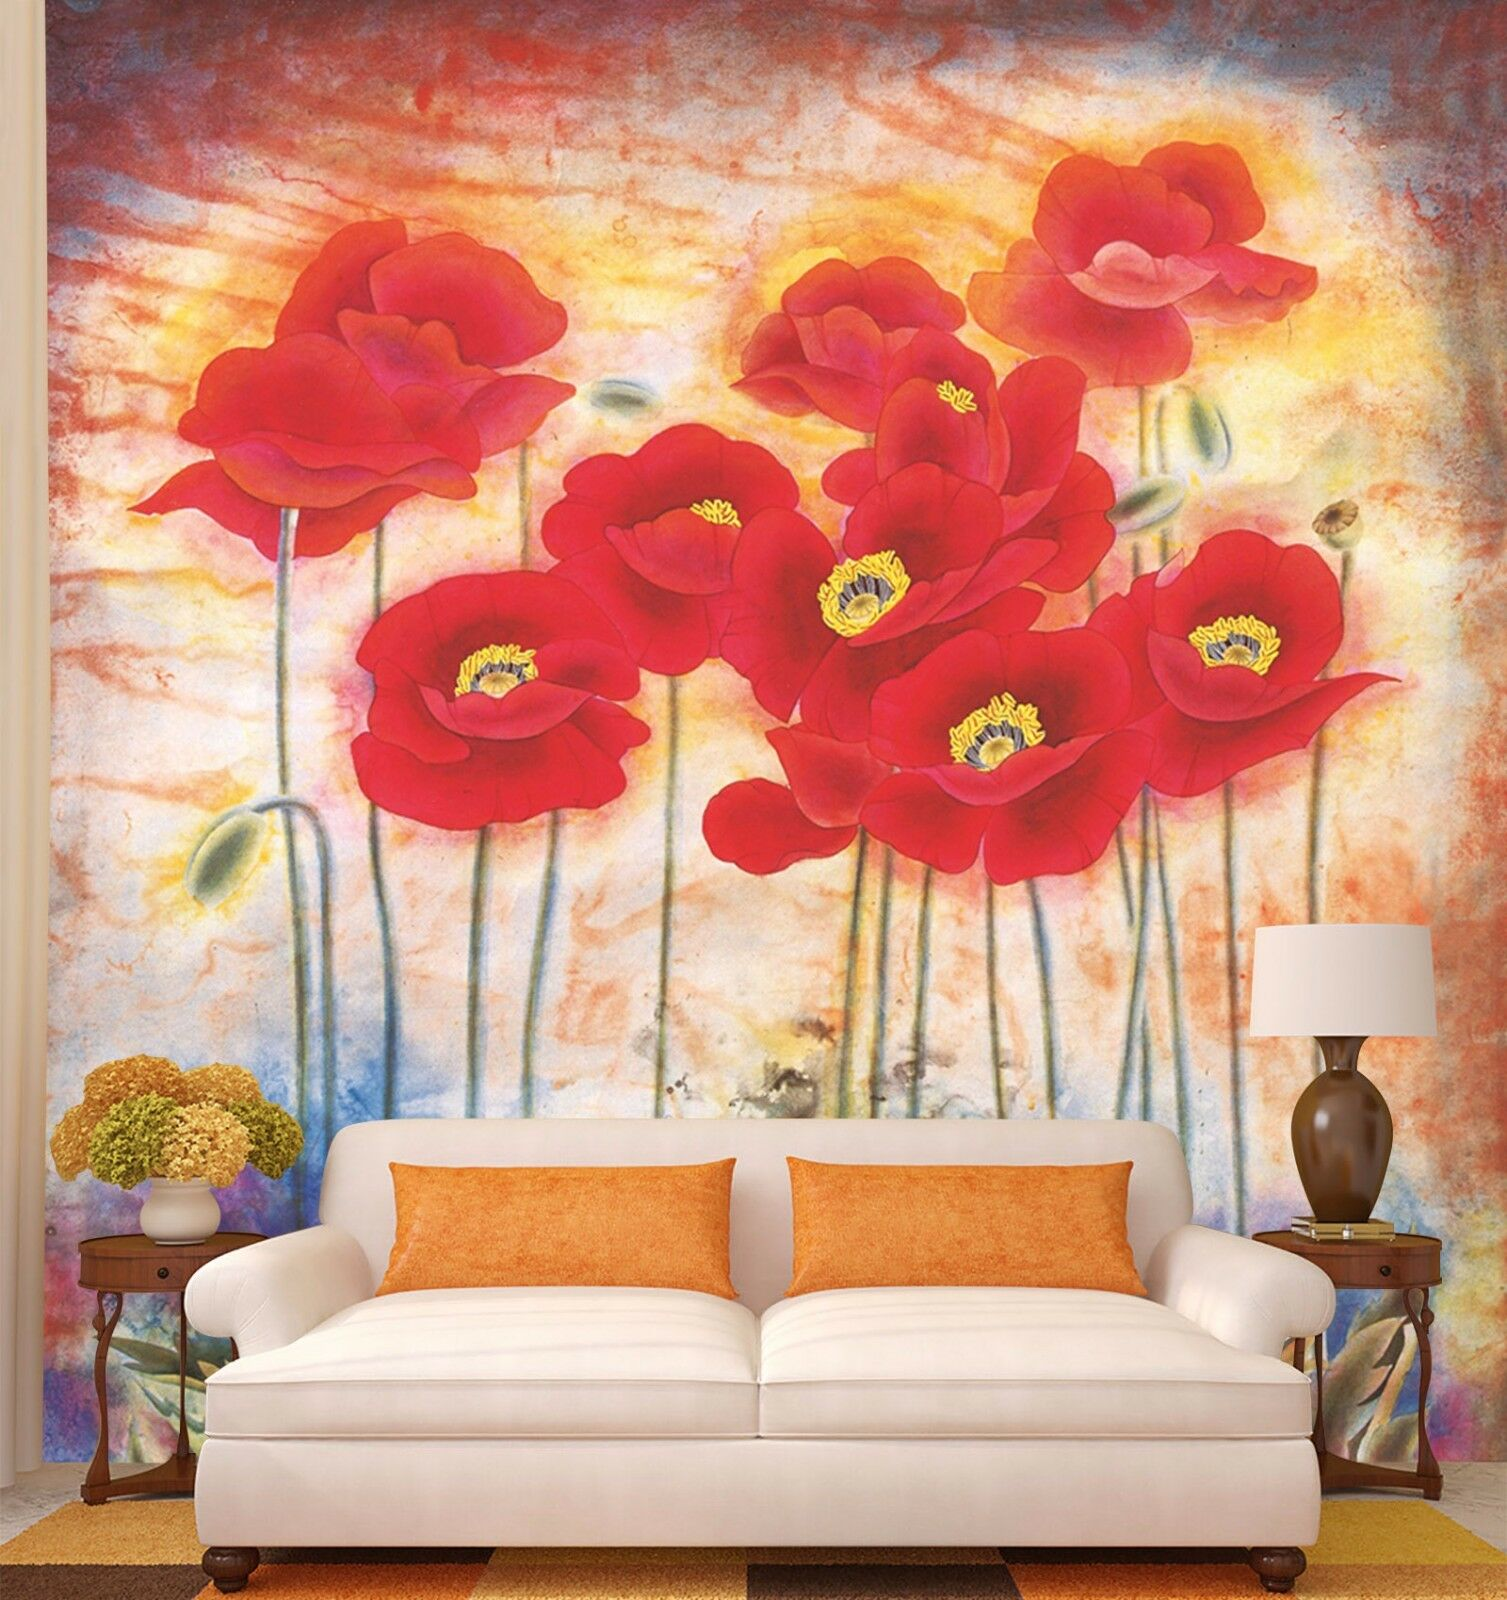 3D ROT Flower Painting 98 Wallpaper Mural Paper Wall Print Wallpaper Murals UK